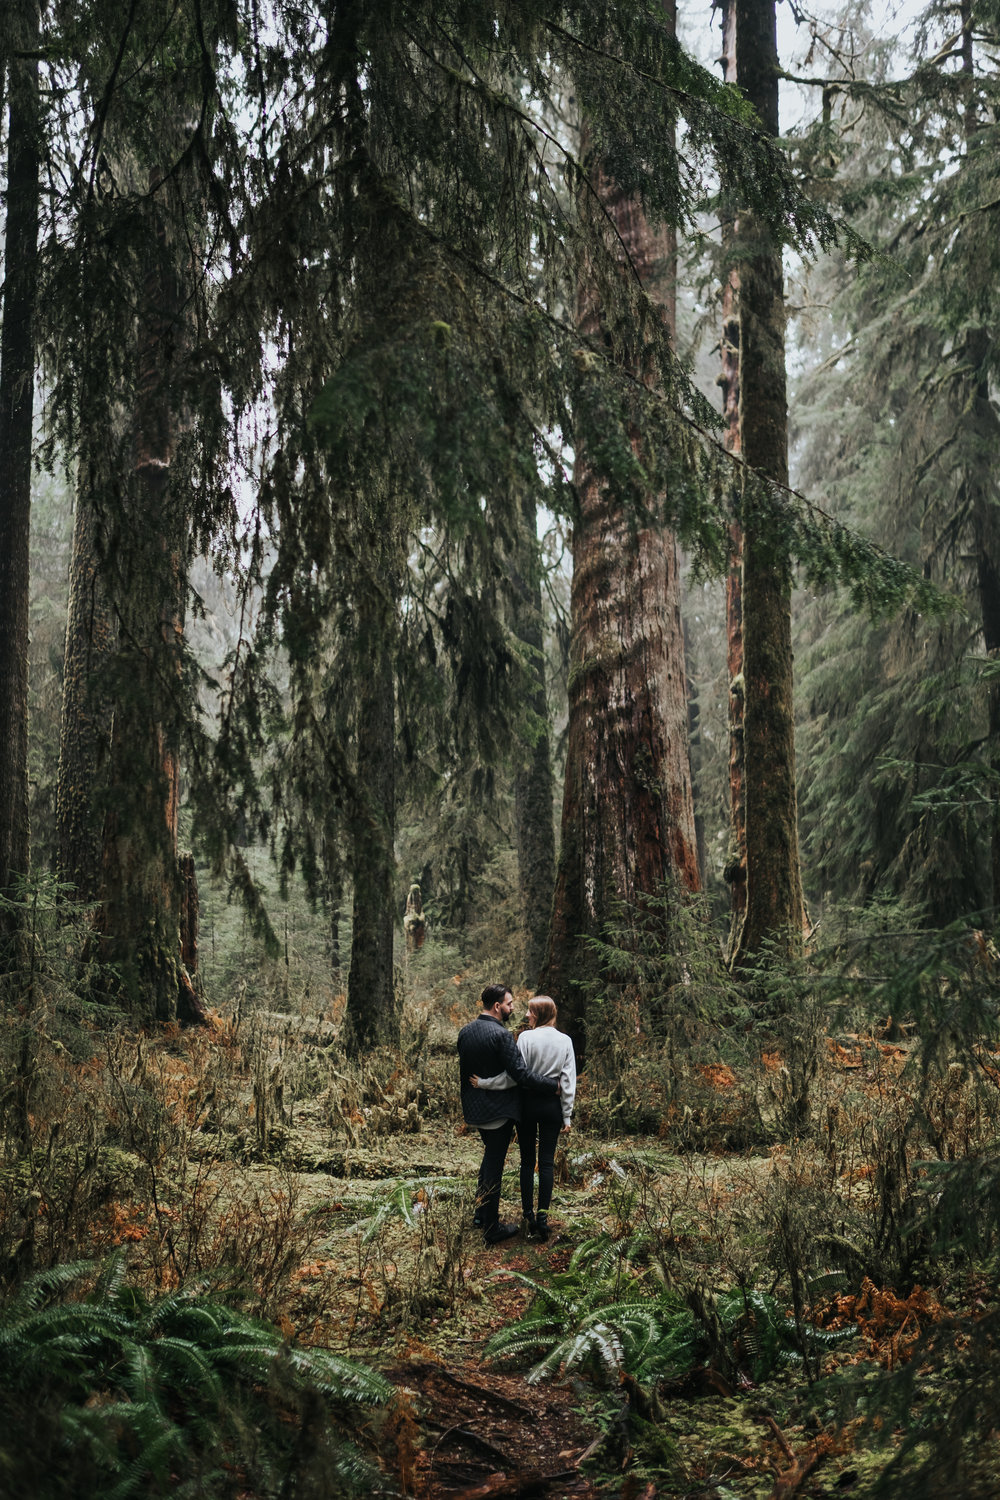 Engagement Session at the Hoh Rainforest in Washington | Katie + Matt